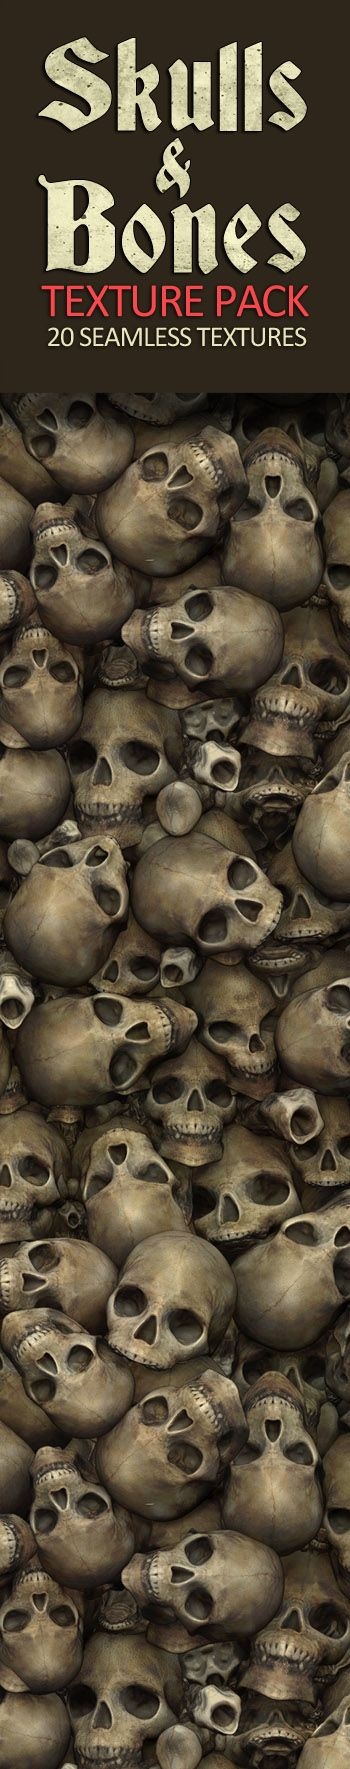 Skulls and Bones Textures. 20 Seamless Textures and Materials. Skulls and Bones combined with mud, sand, water, snow and rocks. 2D 3D game textures for Unreal Engine, Unity 3D, Crytek, Cryengine. PBR sculpted textures.